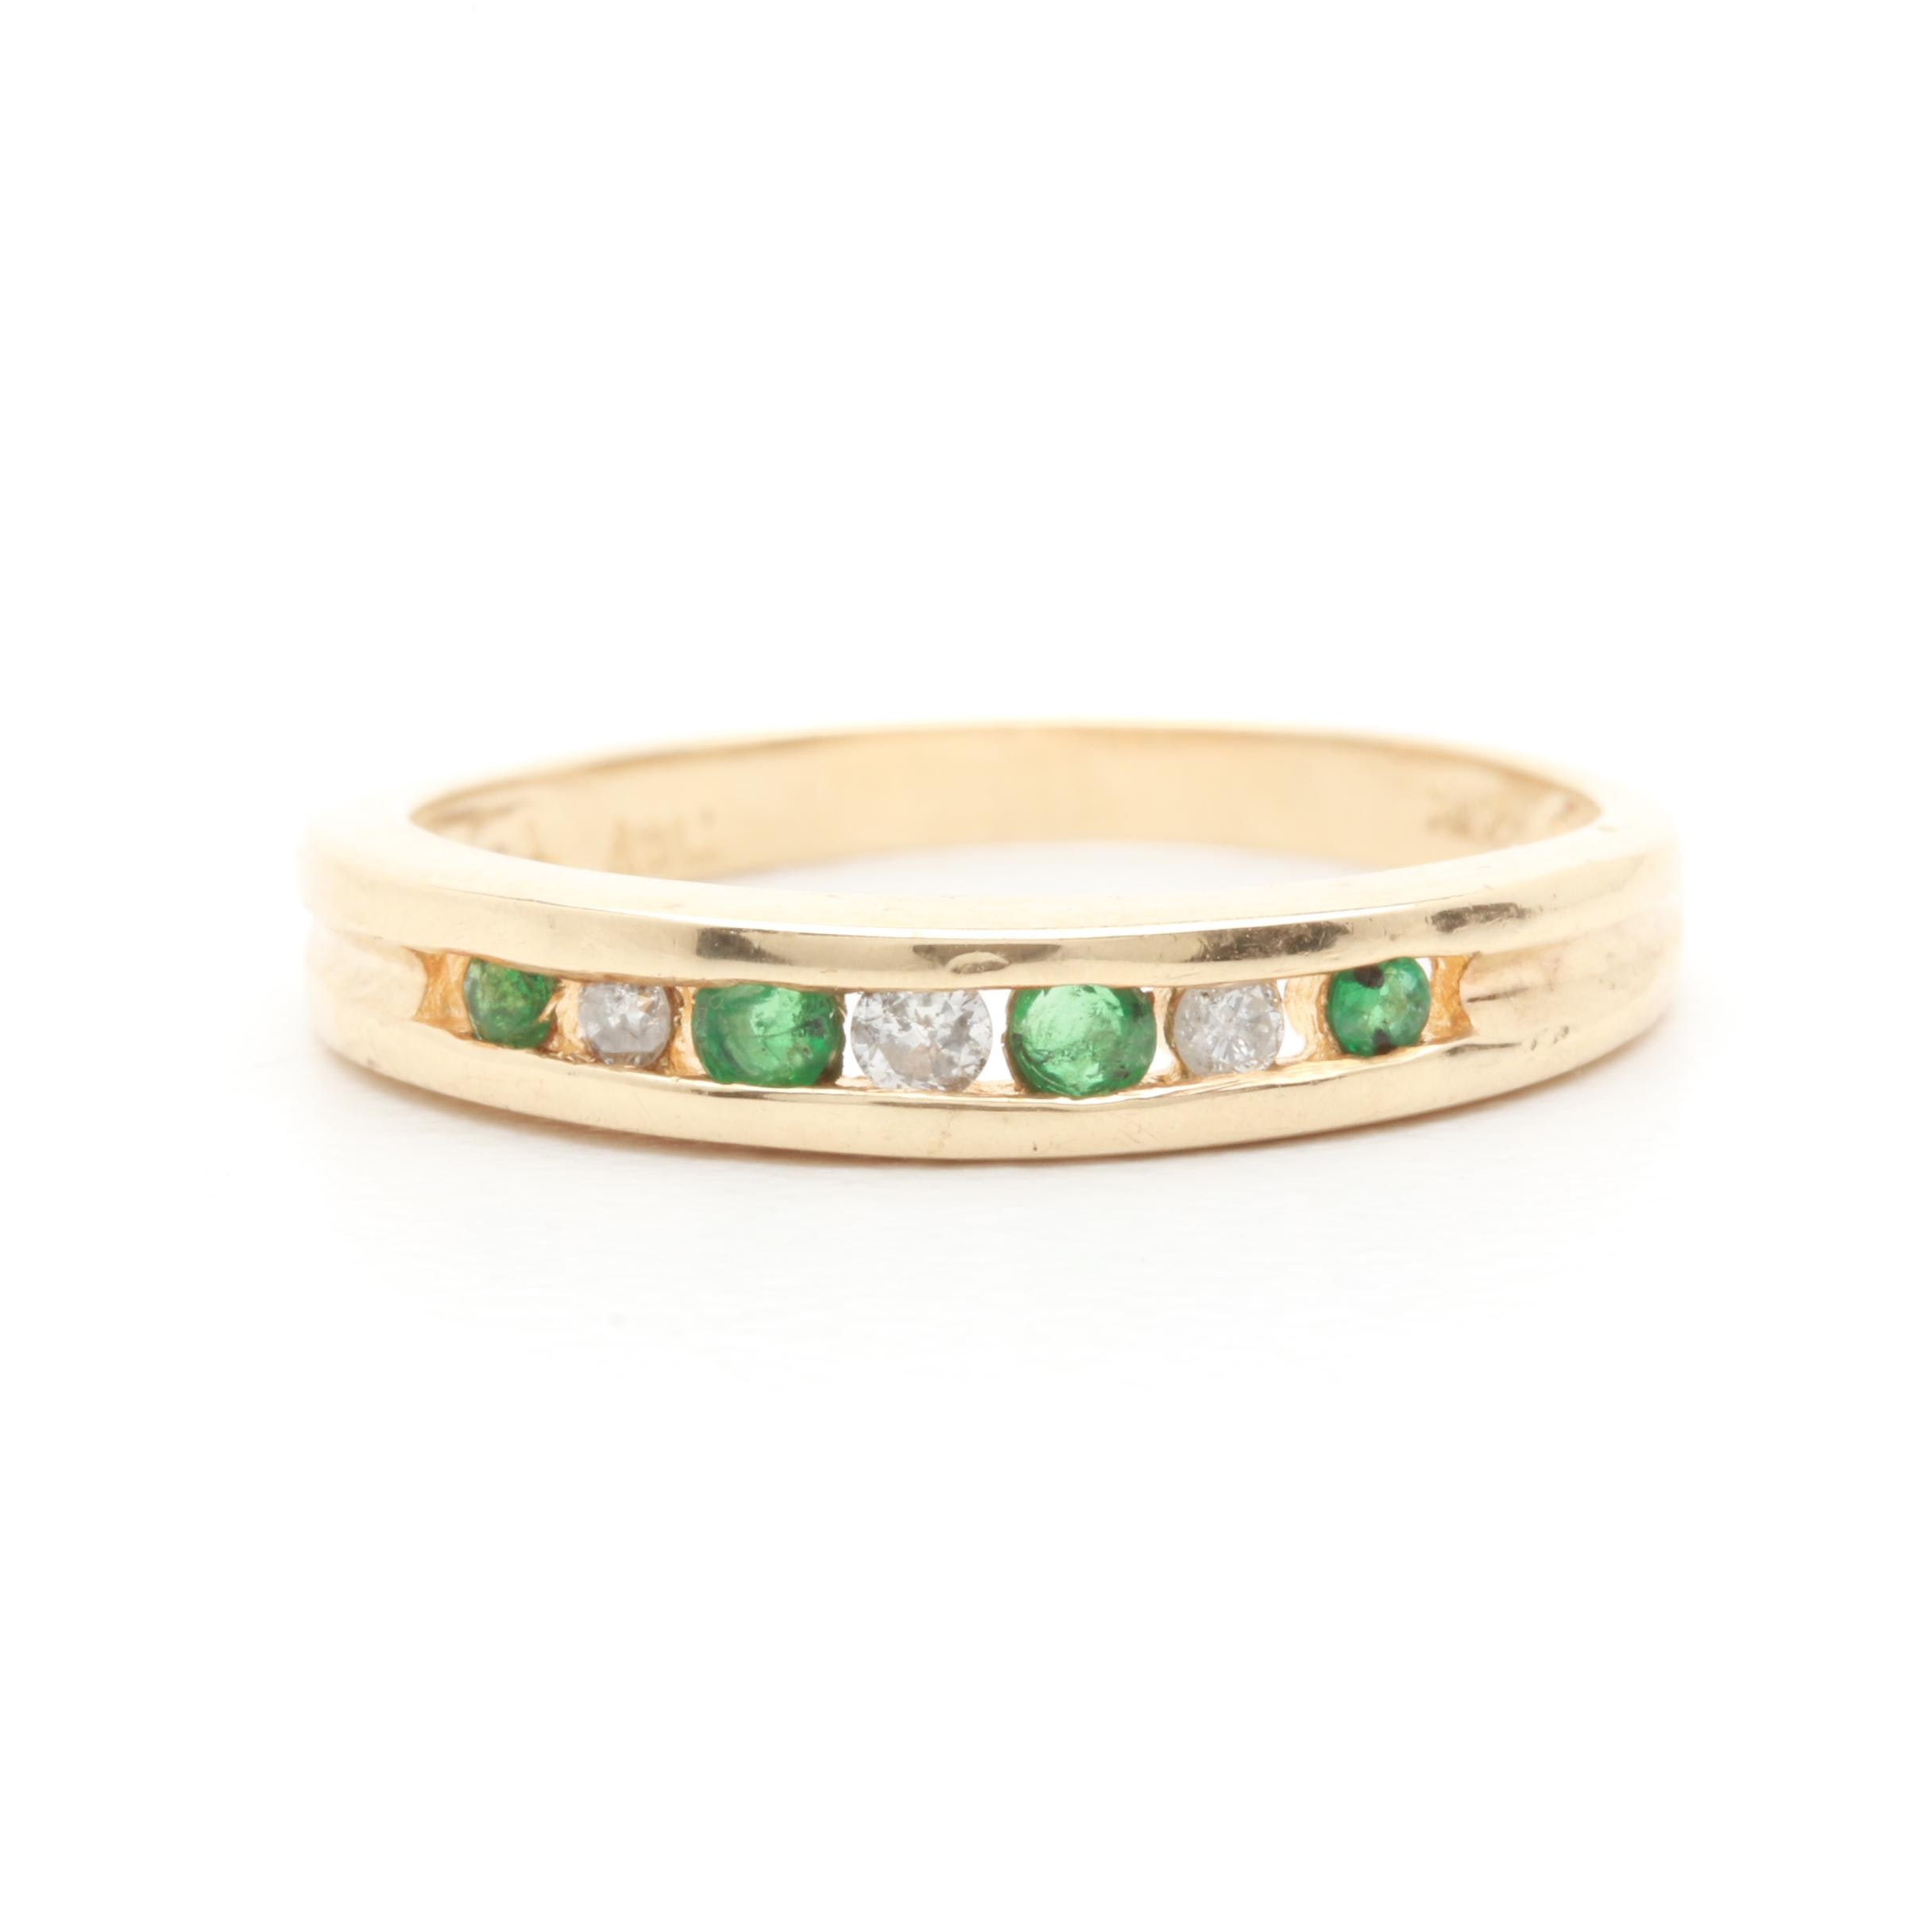 10K Yellow Gold Diamond and Emerald Ring